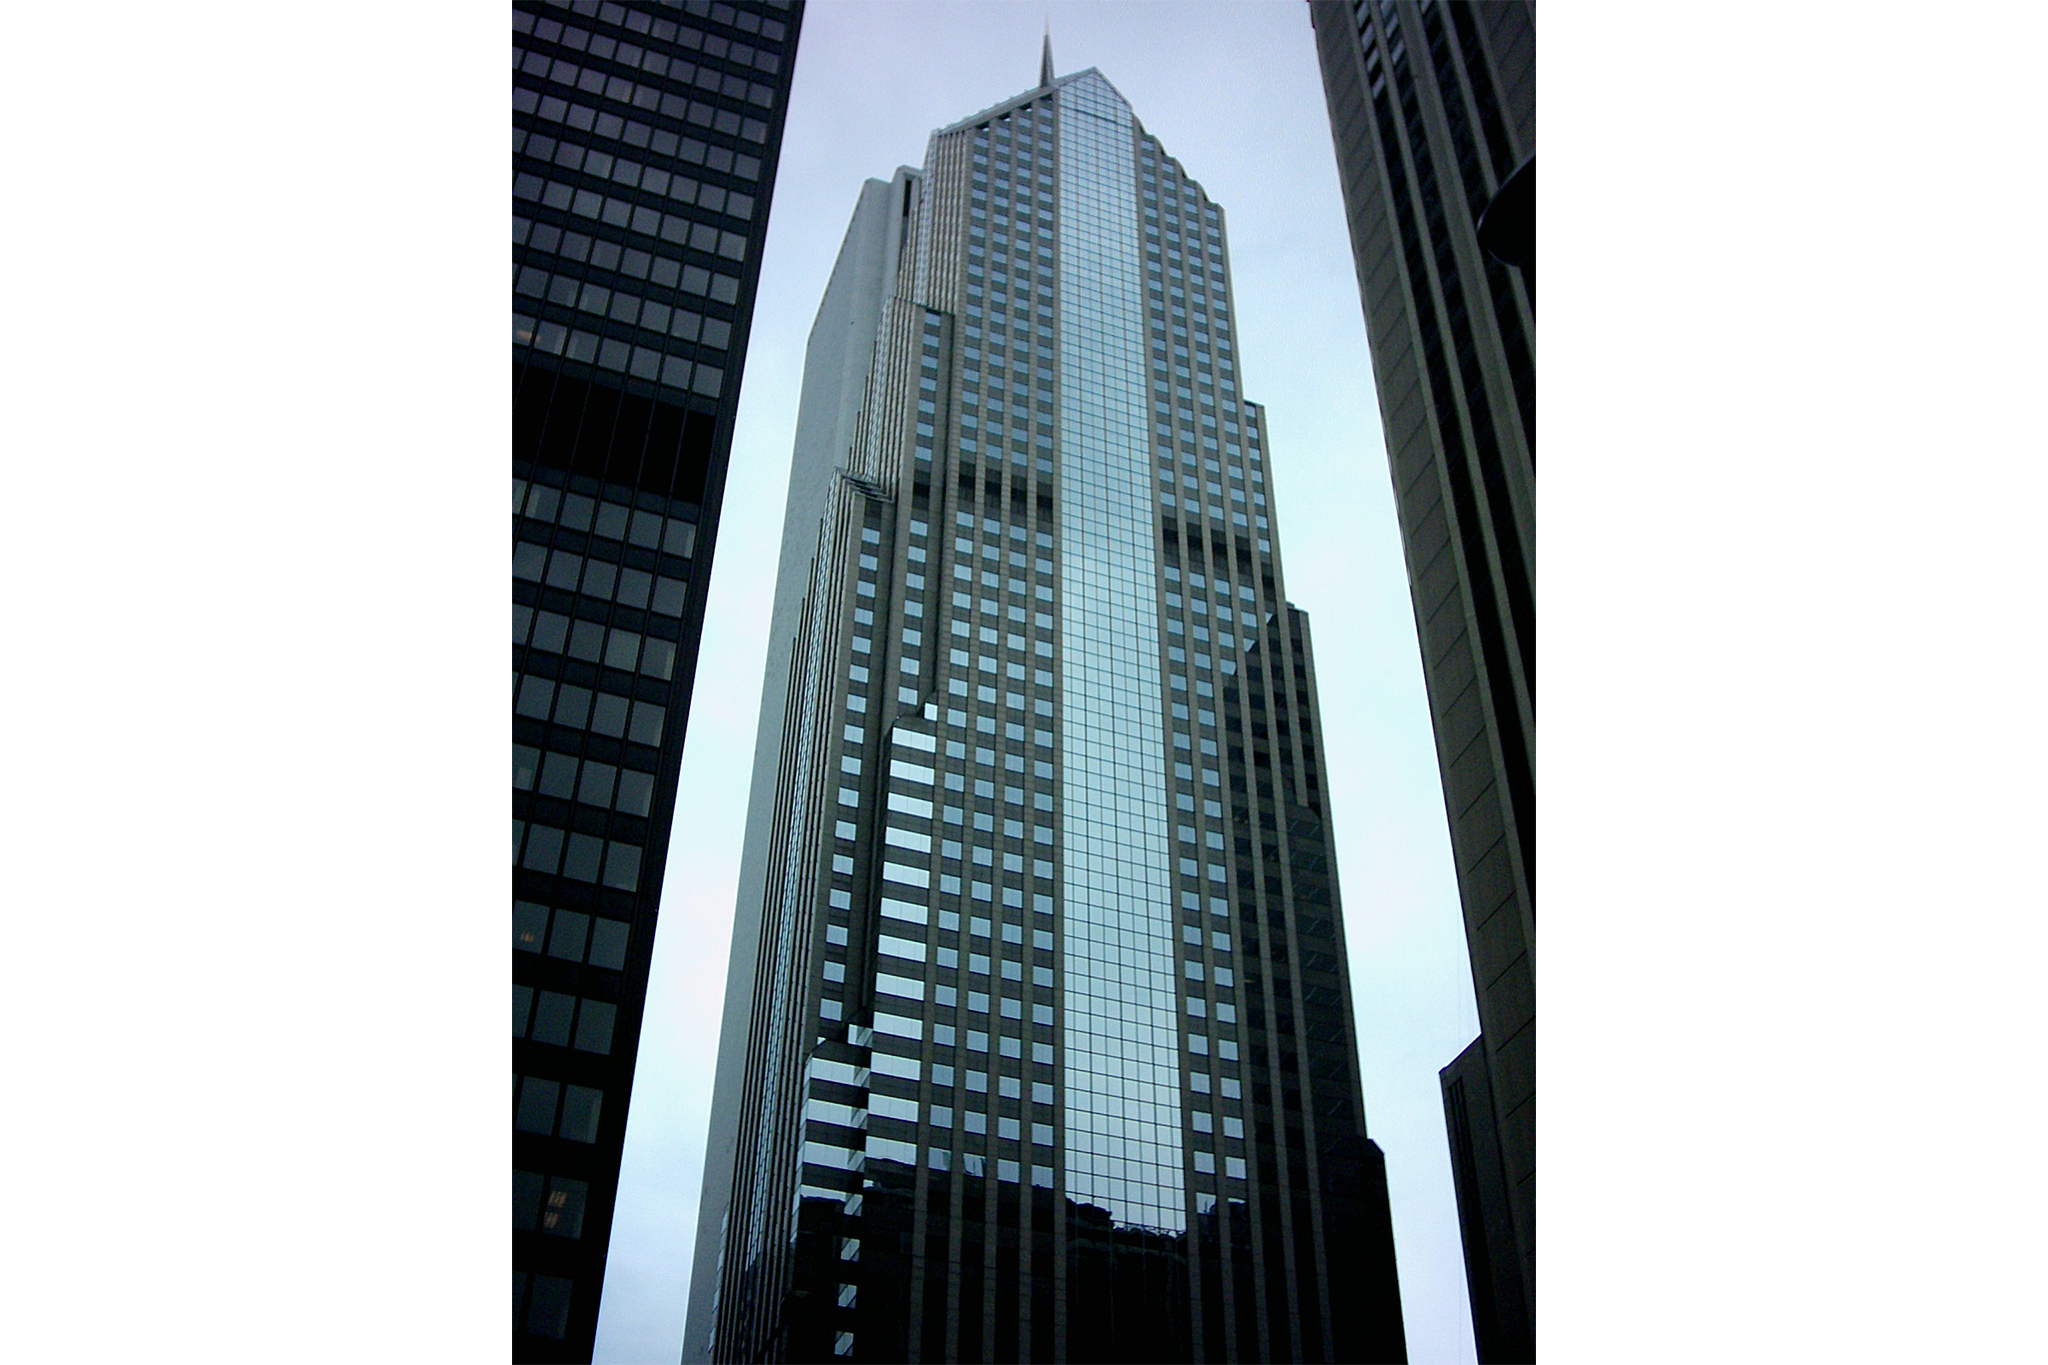 Two Prudential Building Plaza